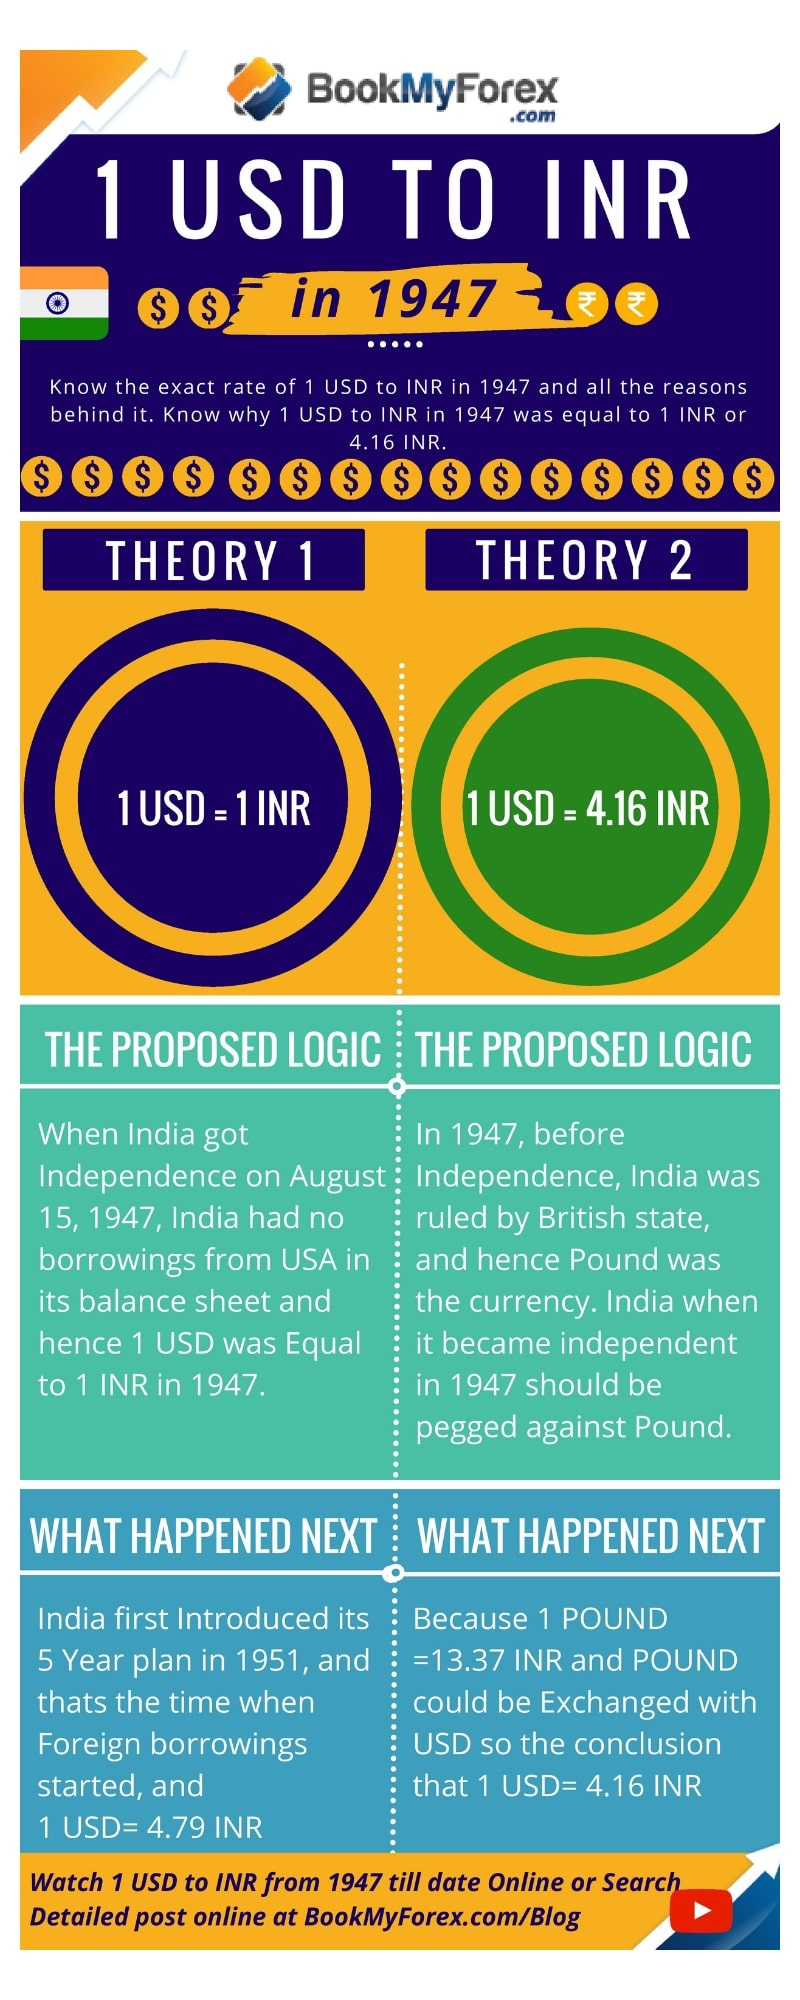 Historical Data Usd To Inr From 1947